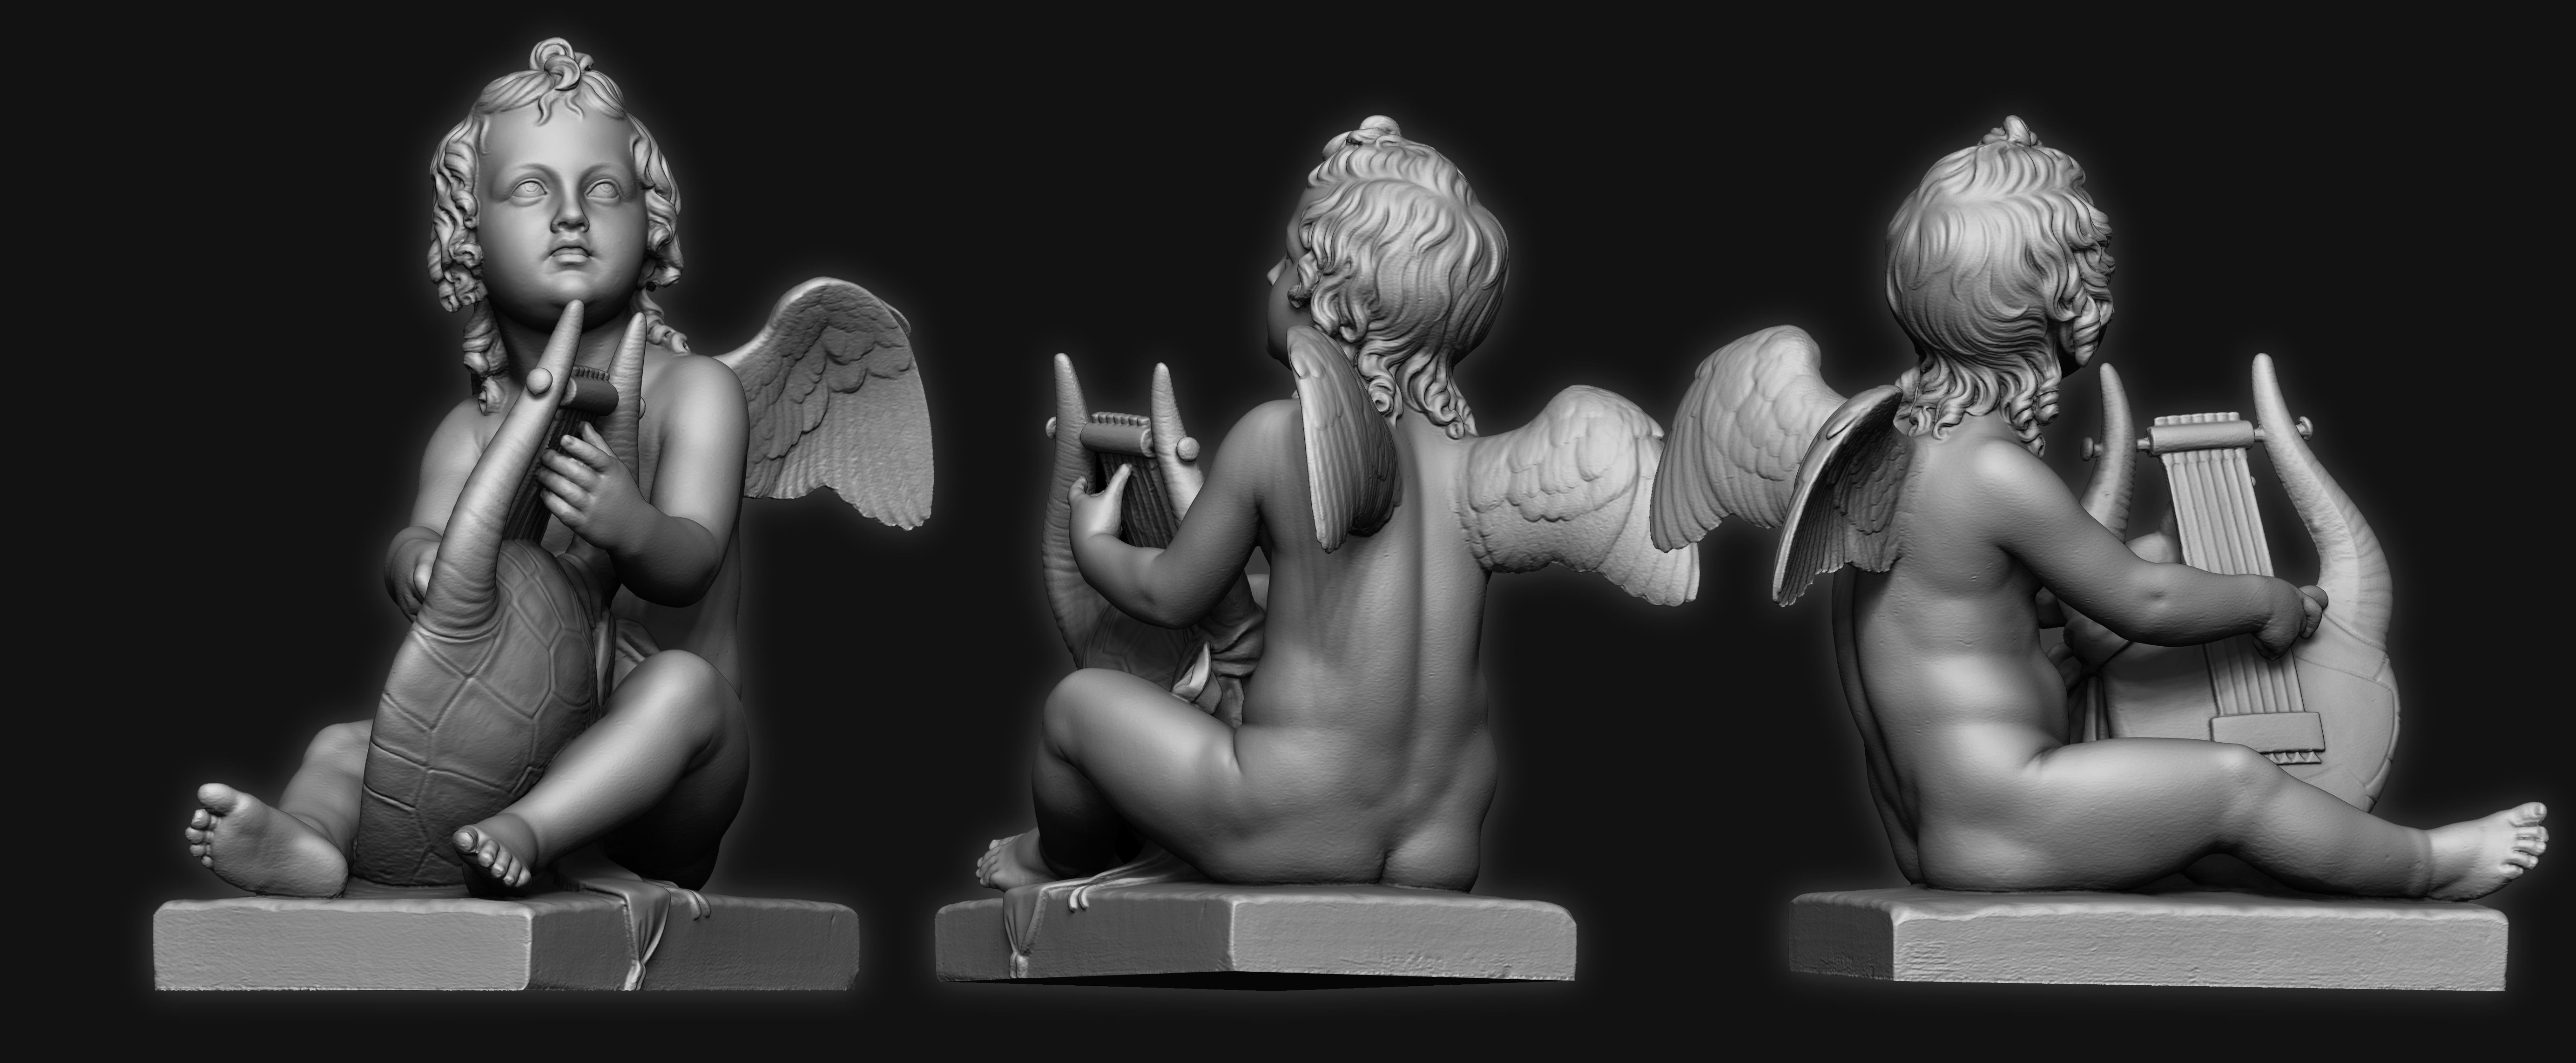 Sculpture Kid Angel 3D Print Model